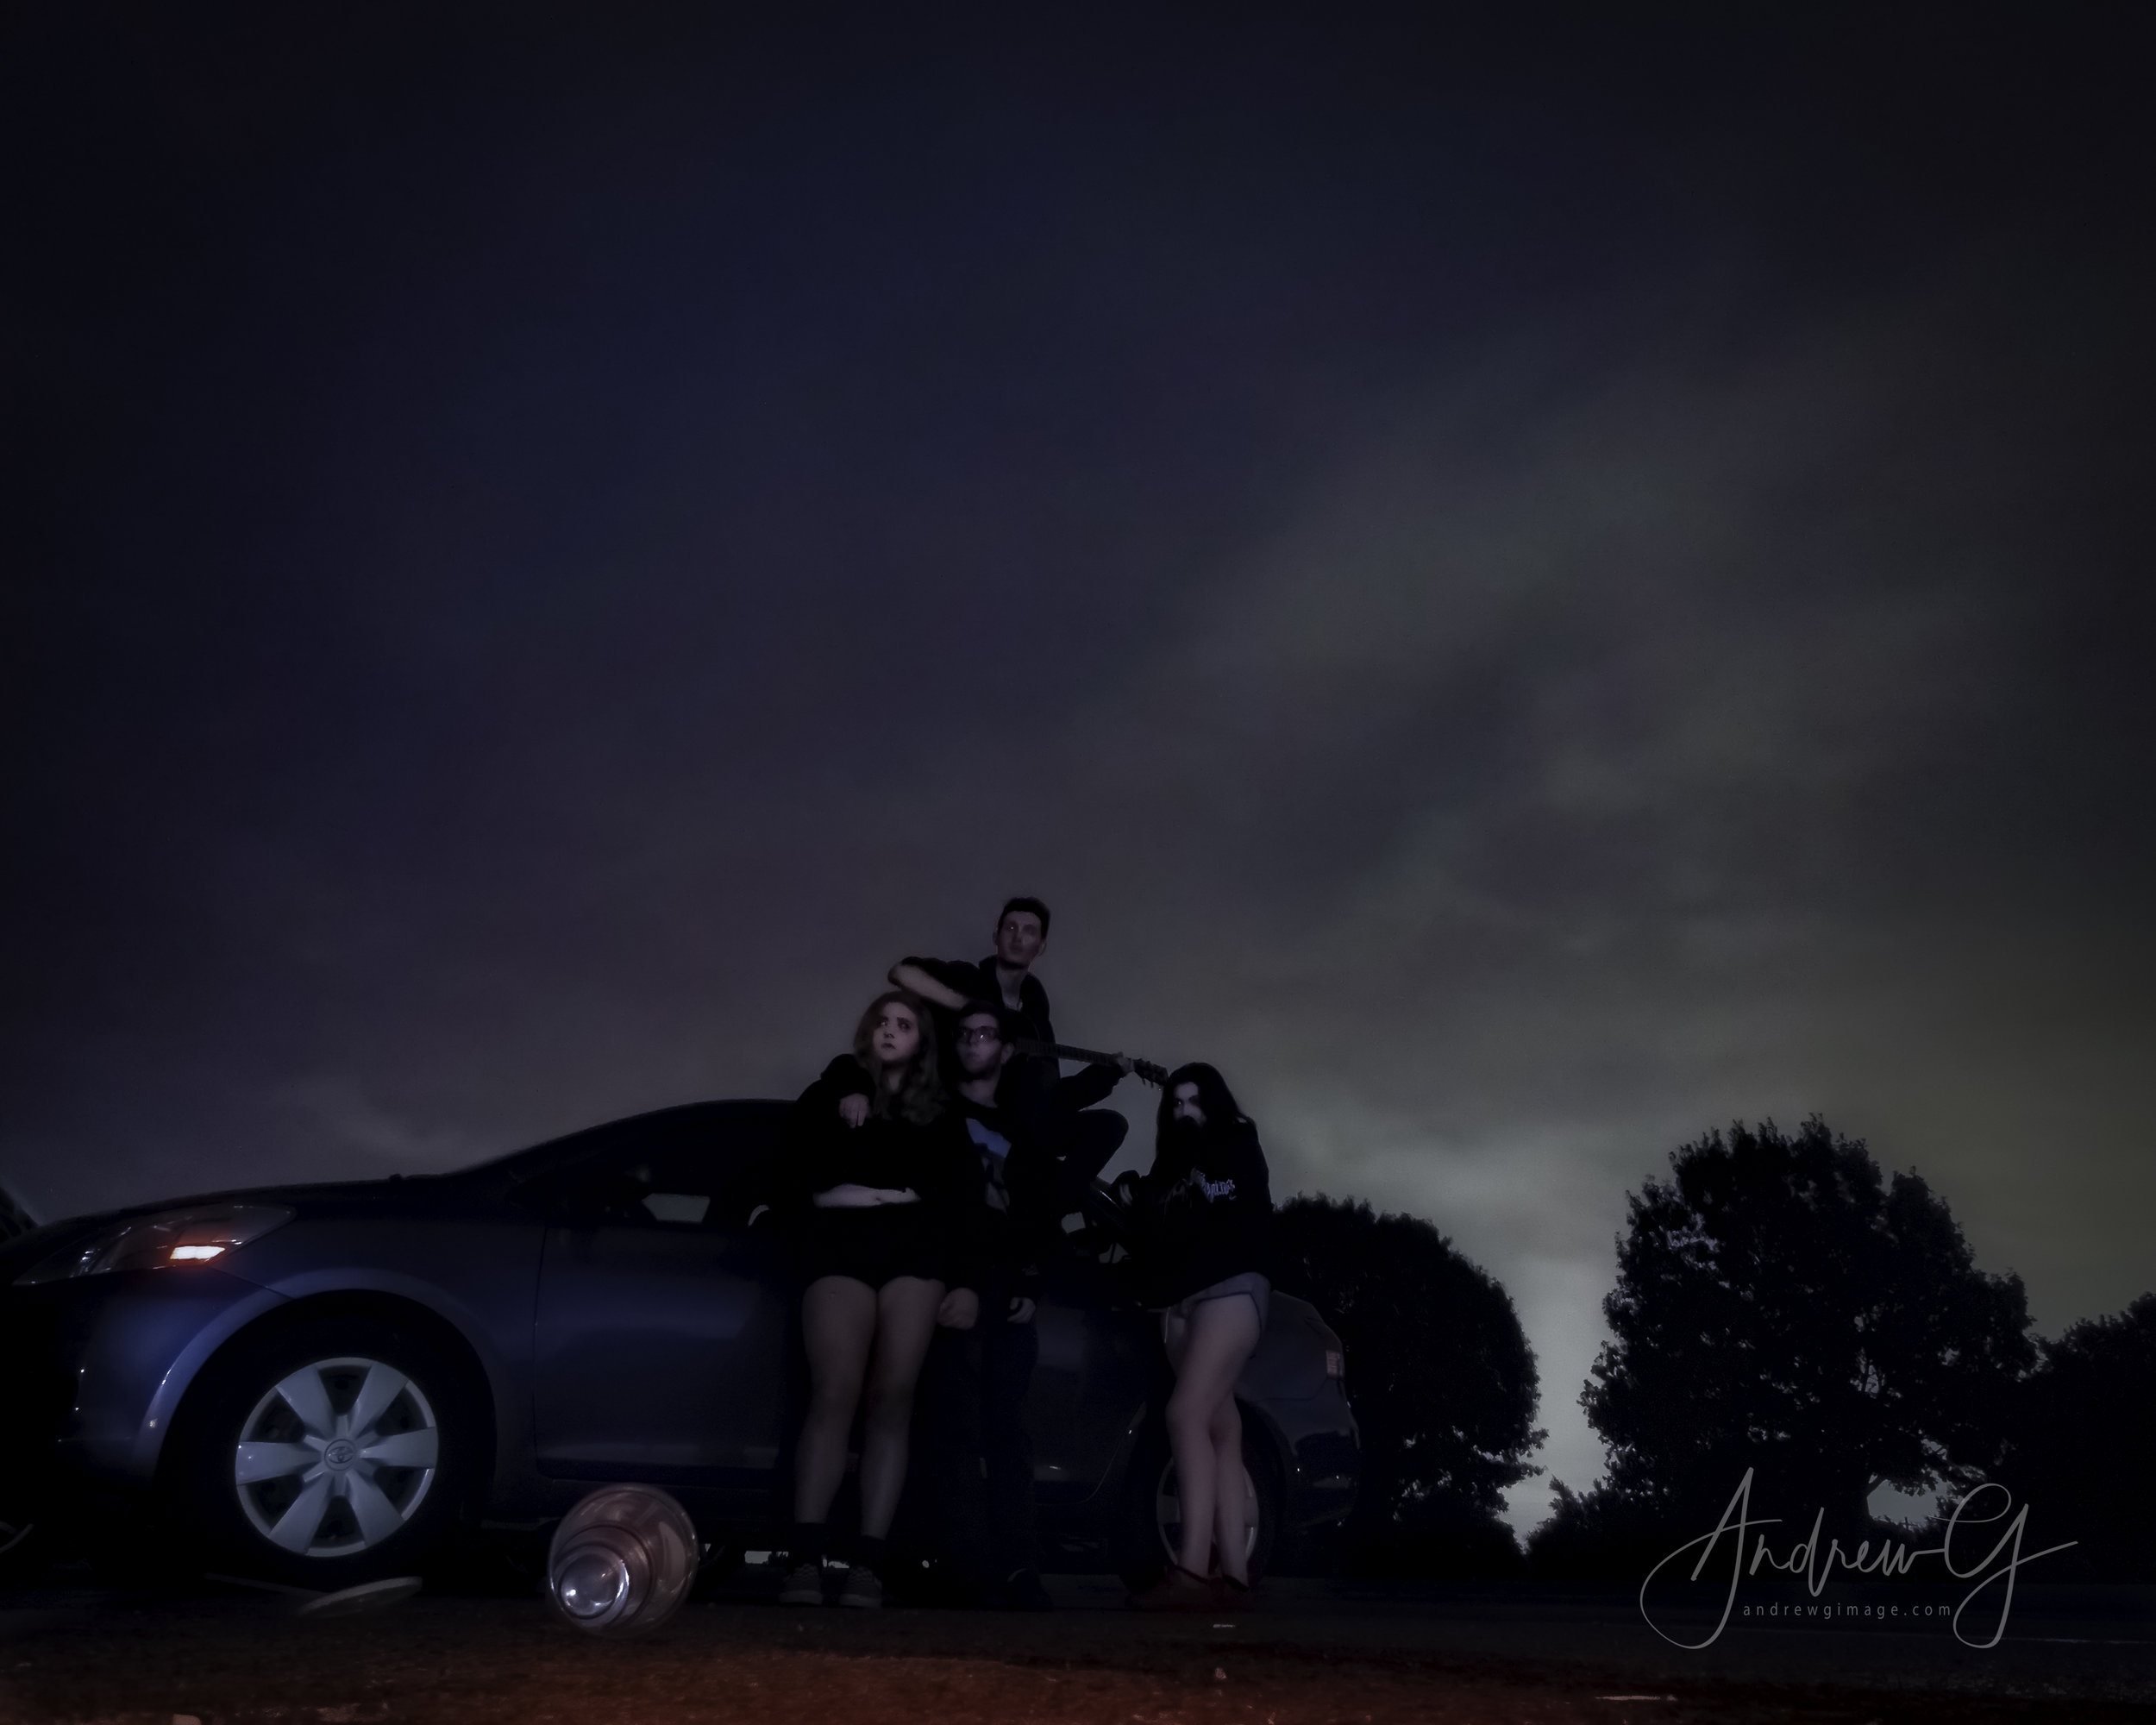 friends together 02 | stormy night sky | Lake O | OK | ANDREW G 2018 | 4x5 | post ready.jpg